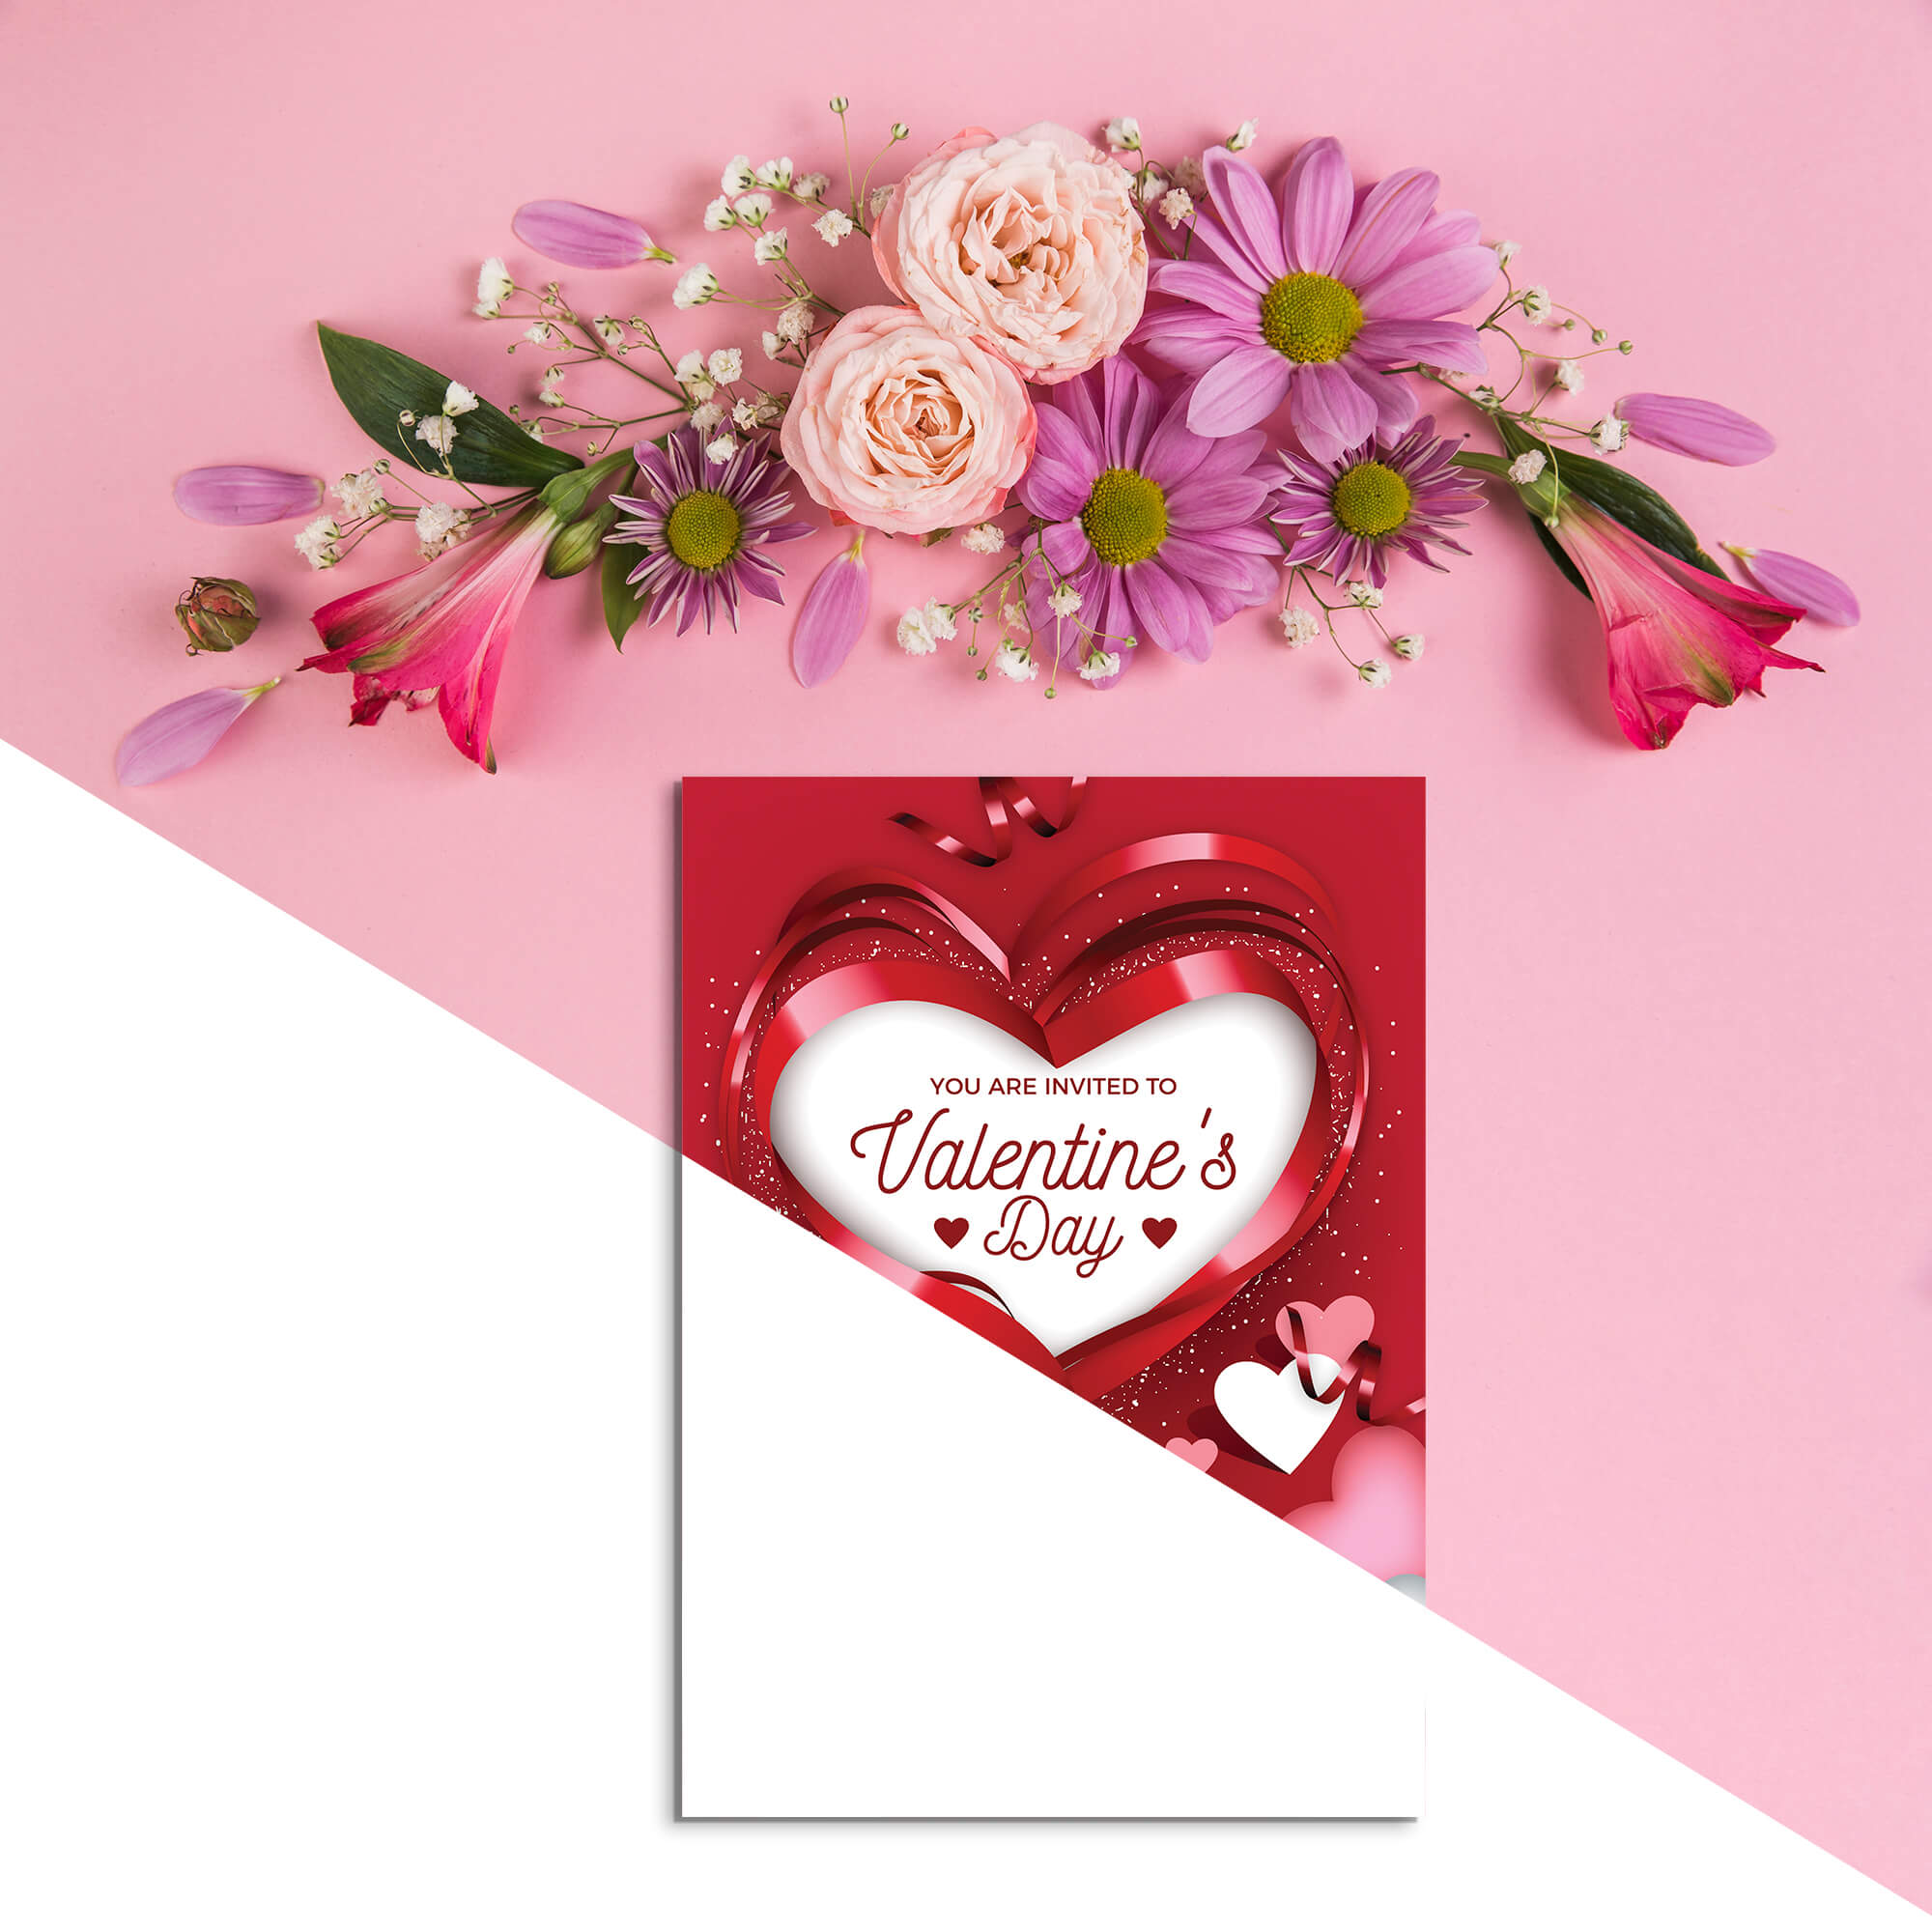 Editable Free Valentines Day Card Mockup PSD Template